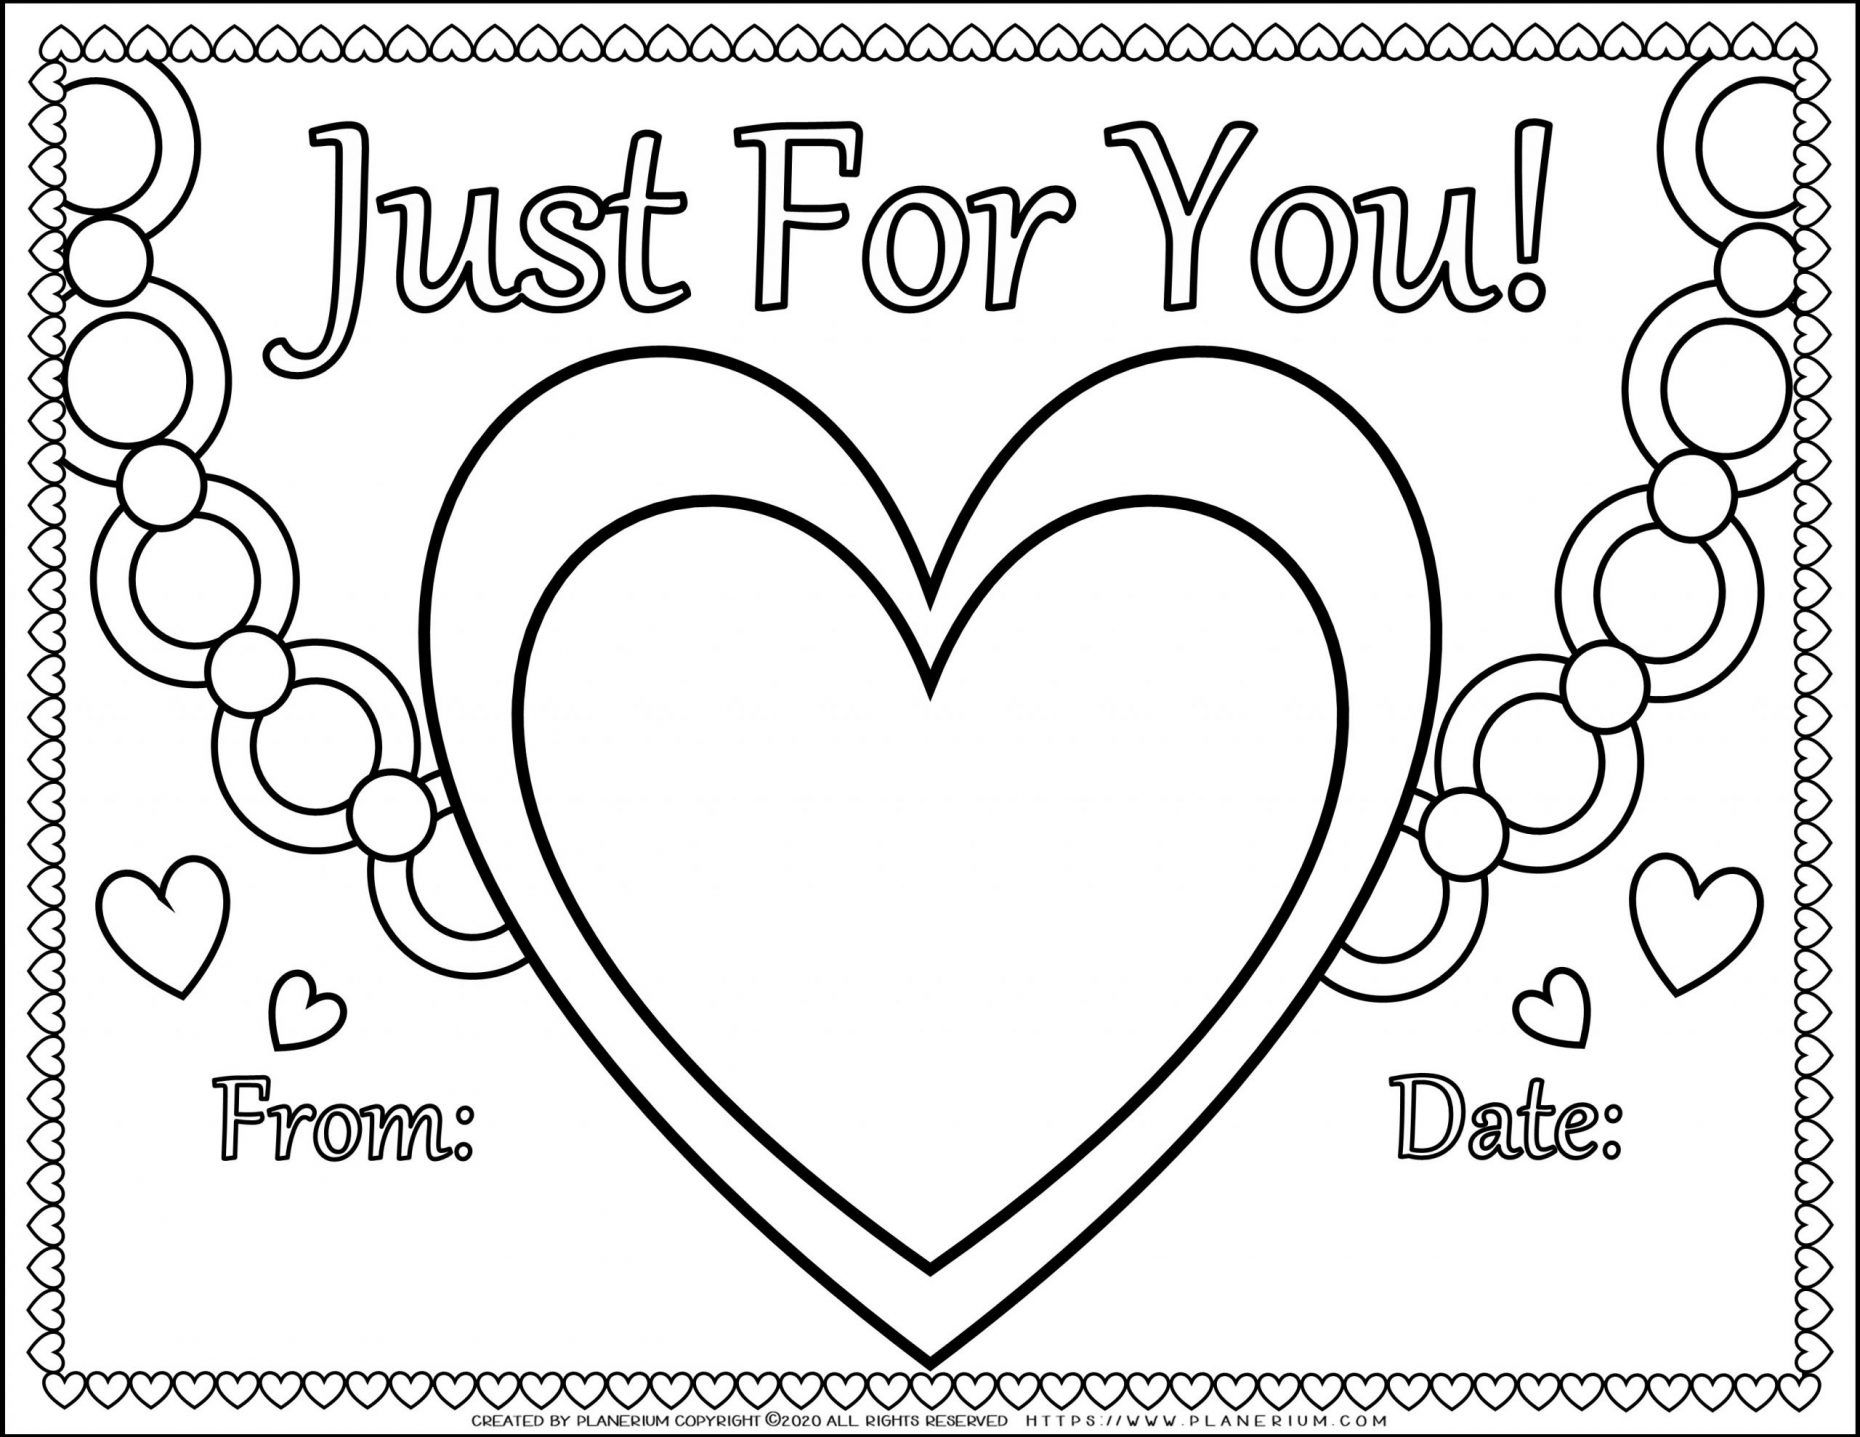 Valentines Day Coloring Page Big Heart For You